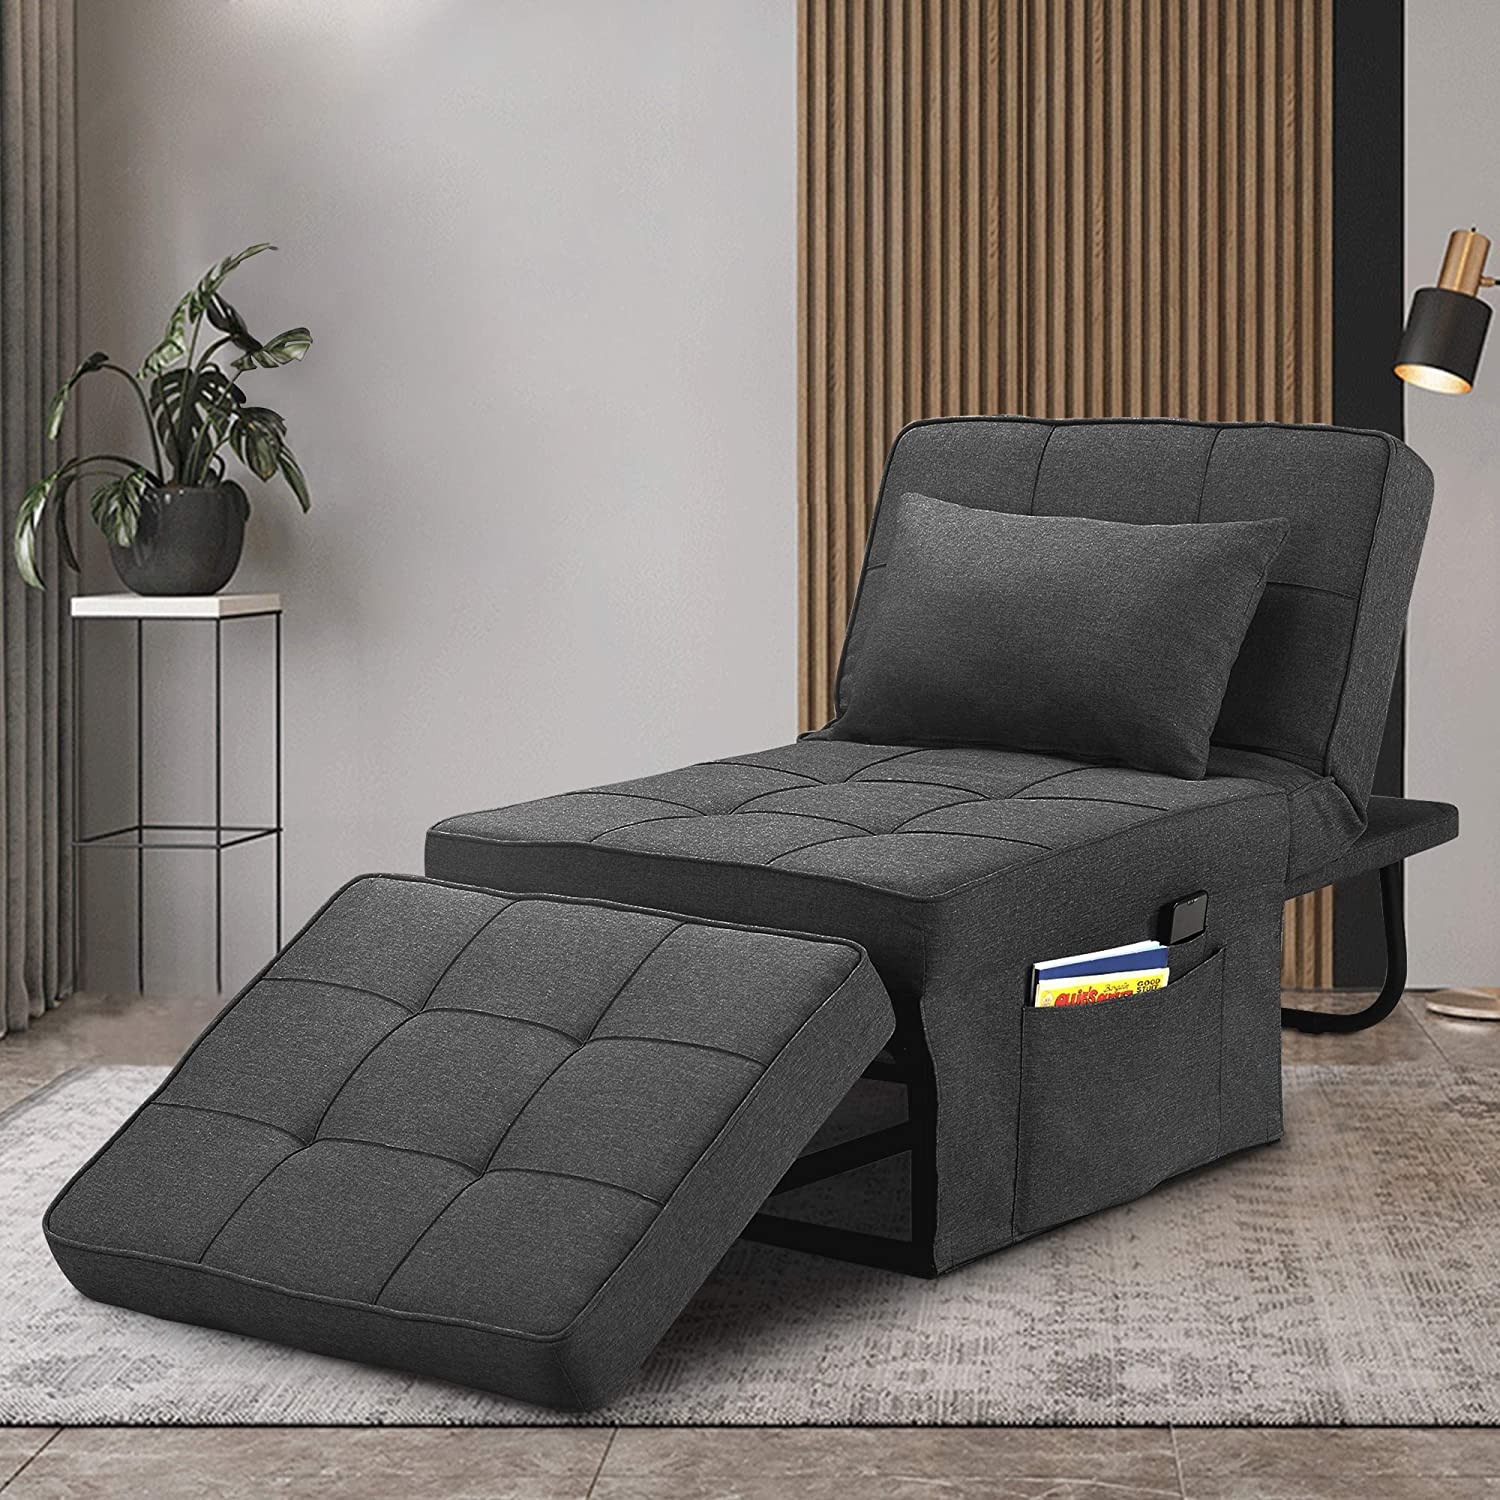 Saemoza Sofa Bed, 4 in 1 Multi Function Single Folding Ottoman Bed with Storage Bag, Modern Sleeper Convertible Chair Adjustable Backrest Small Couch Bed for Living Room/Small Apartment